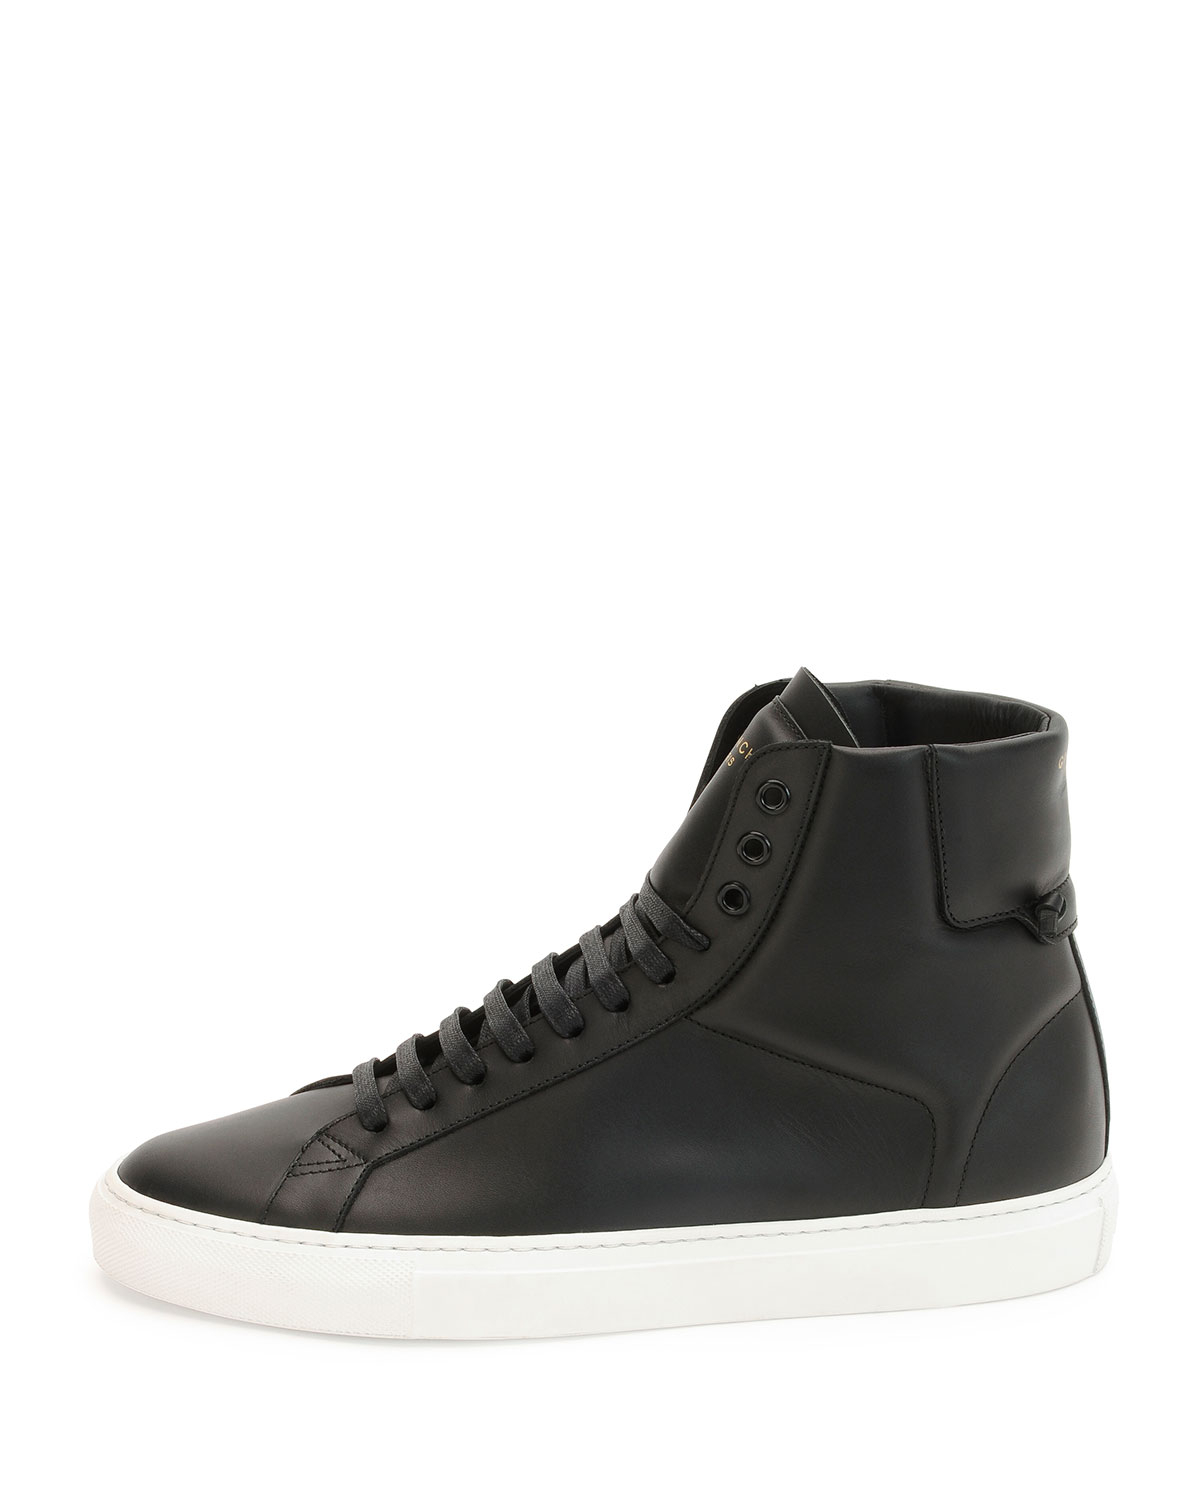 Lyst - Givenchy Urban Street High-Top Sneakers in Black for Men